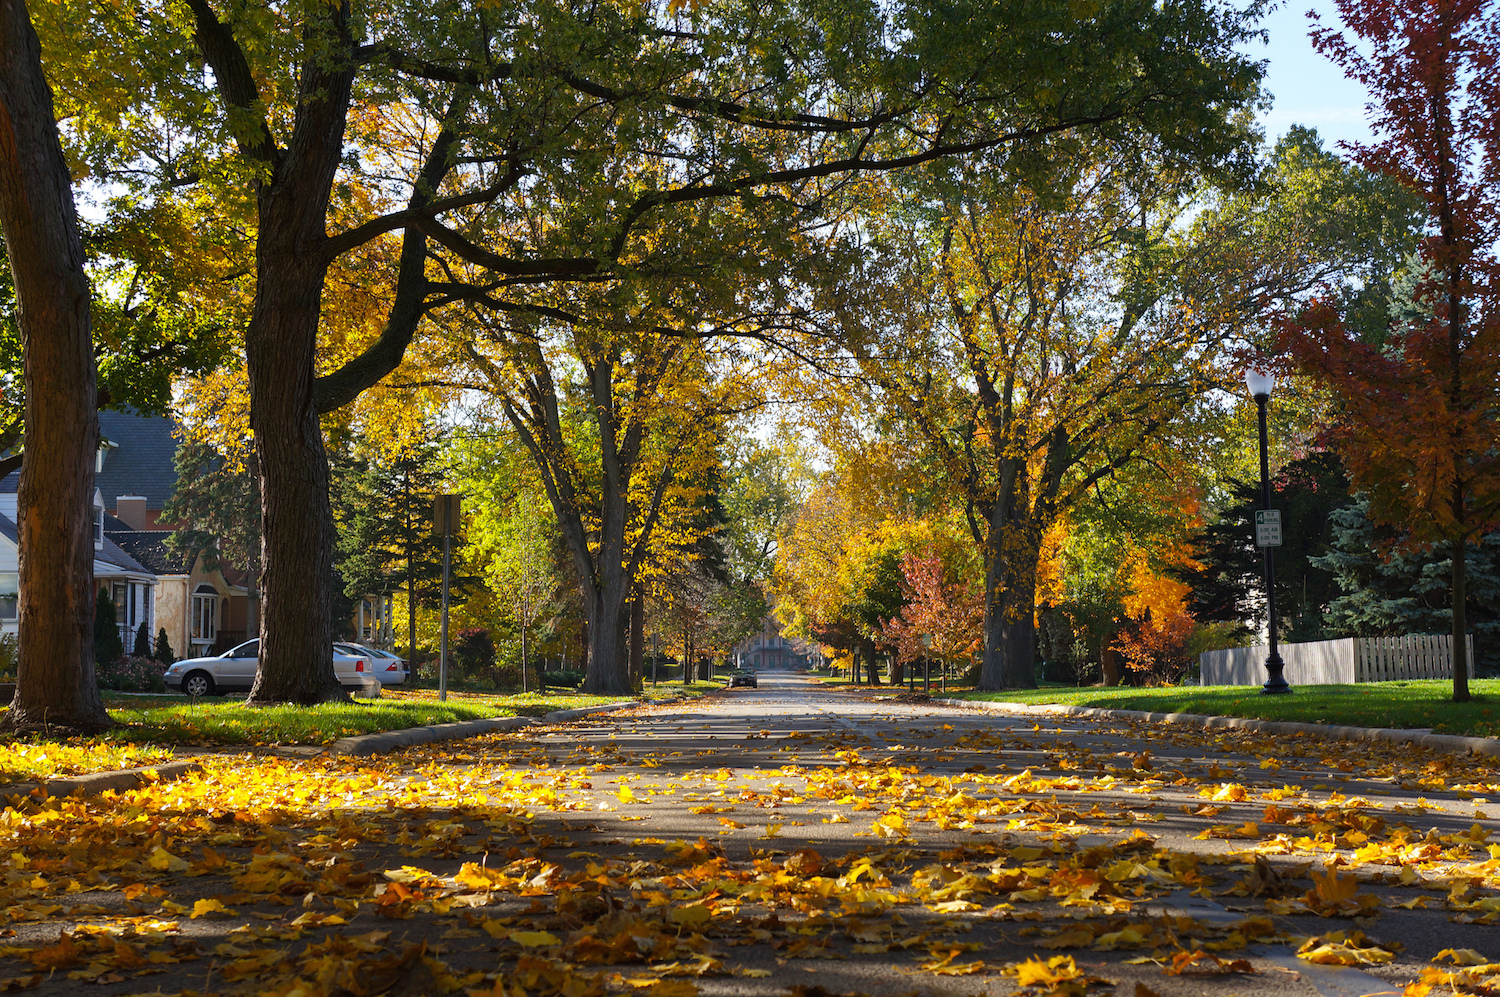 10 things to see and do in naperville illinois